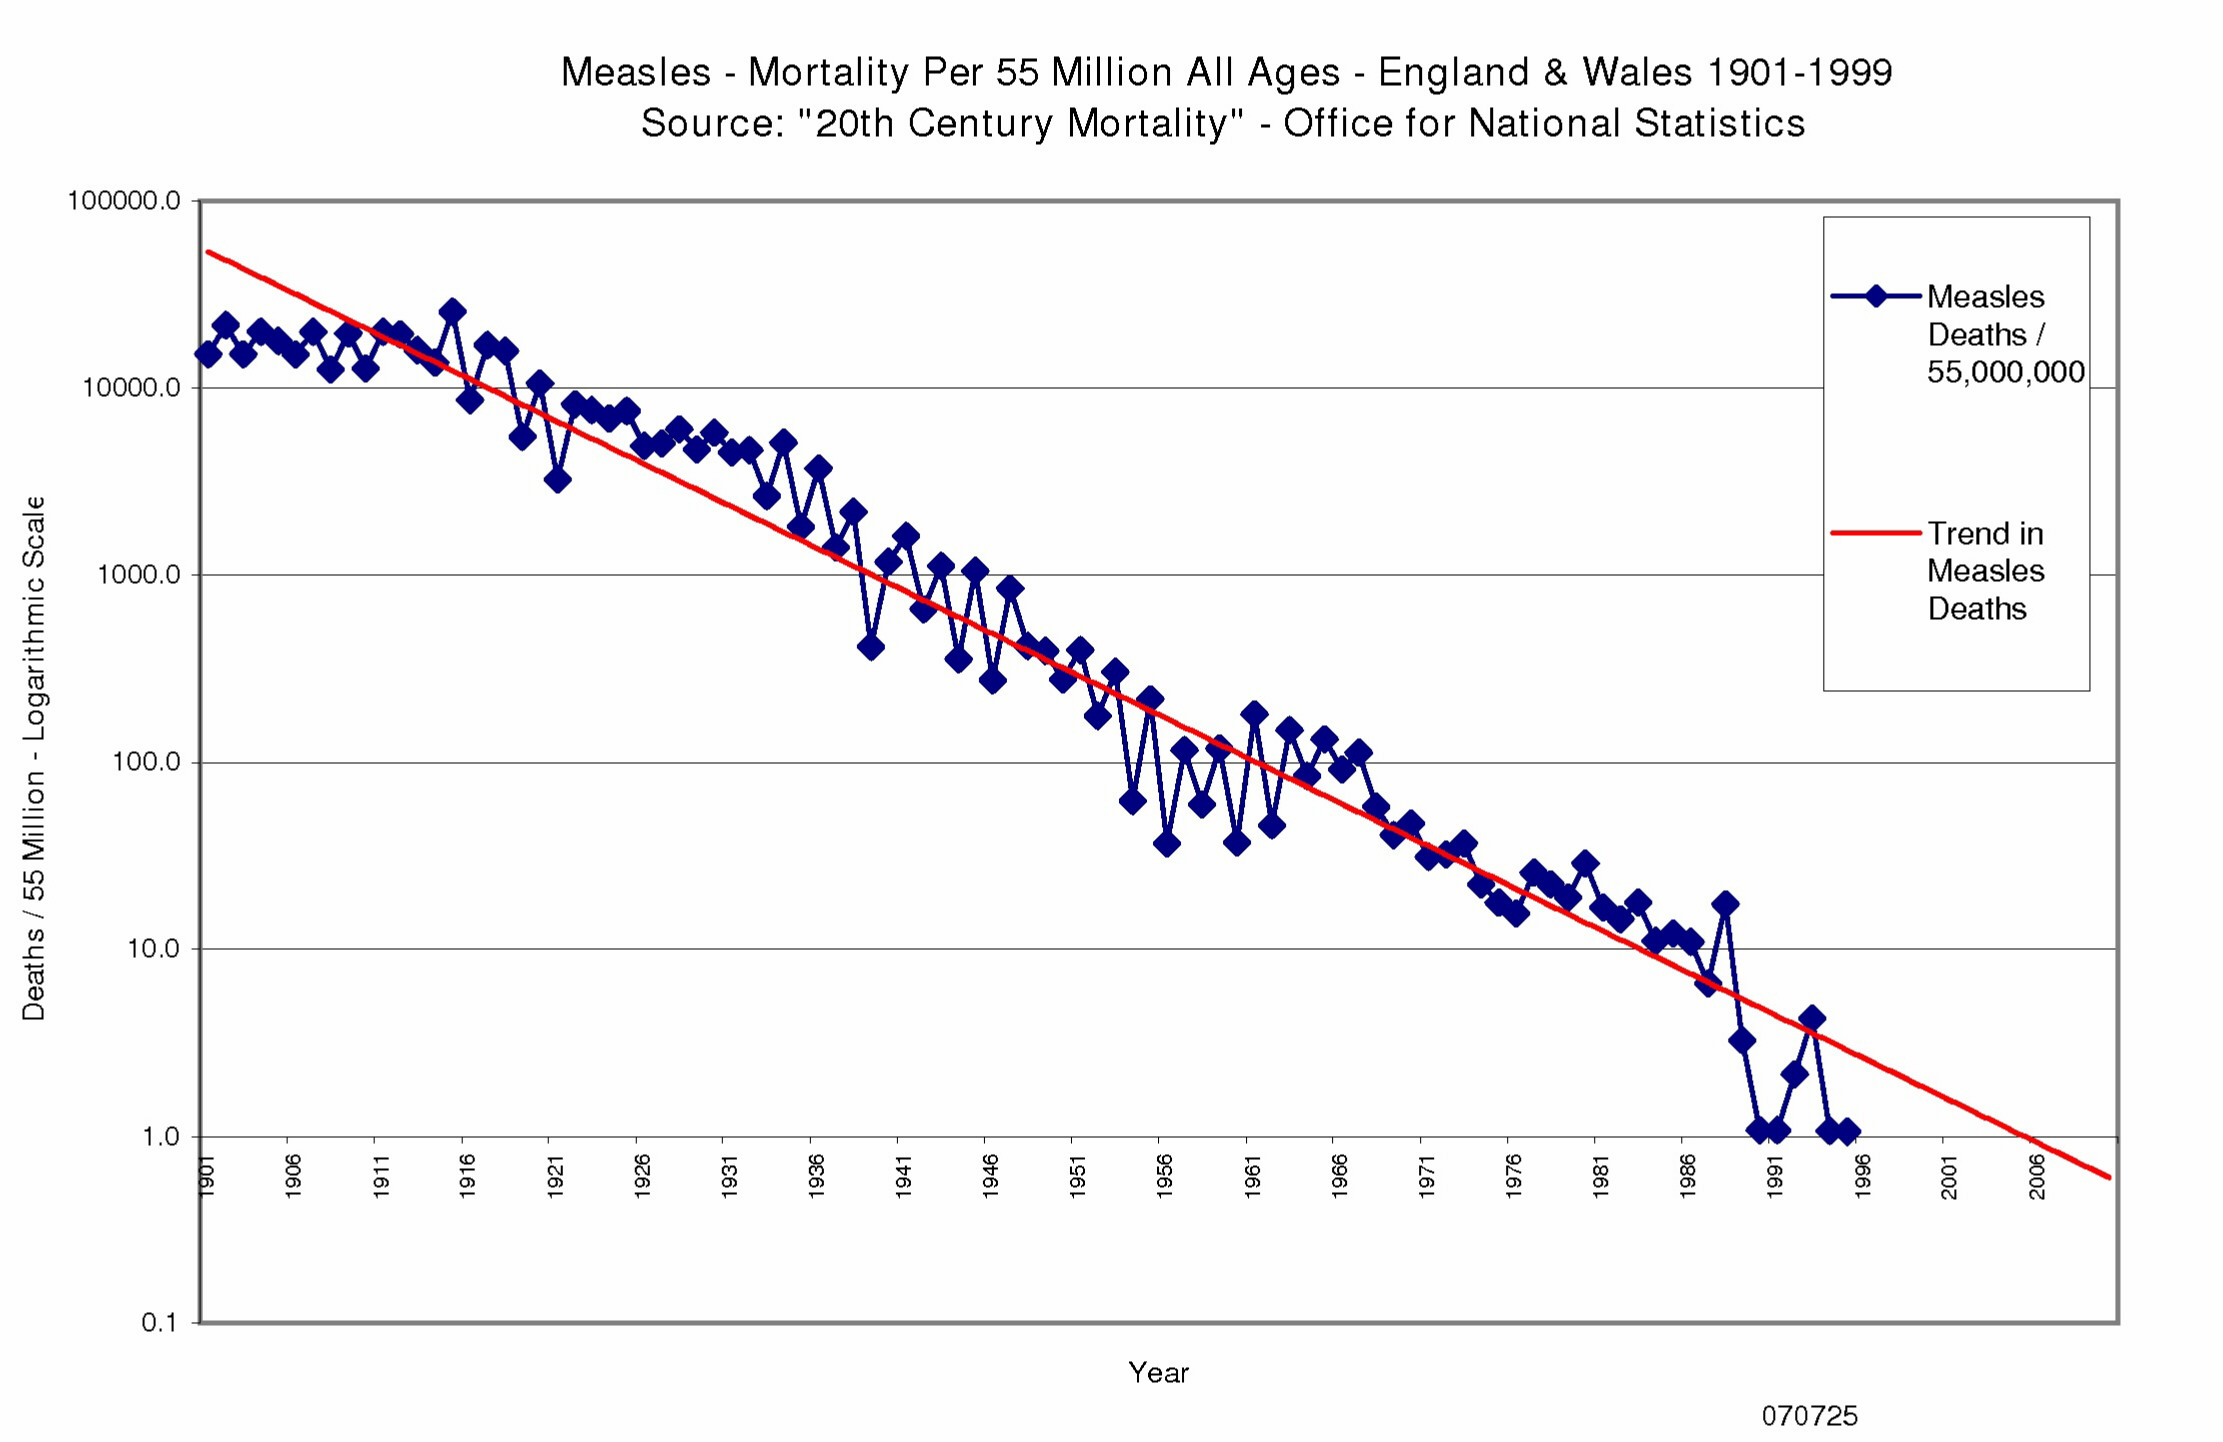 Measles Mortality England & Wales 1901 to 1999